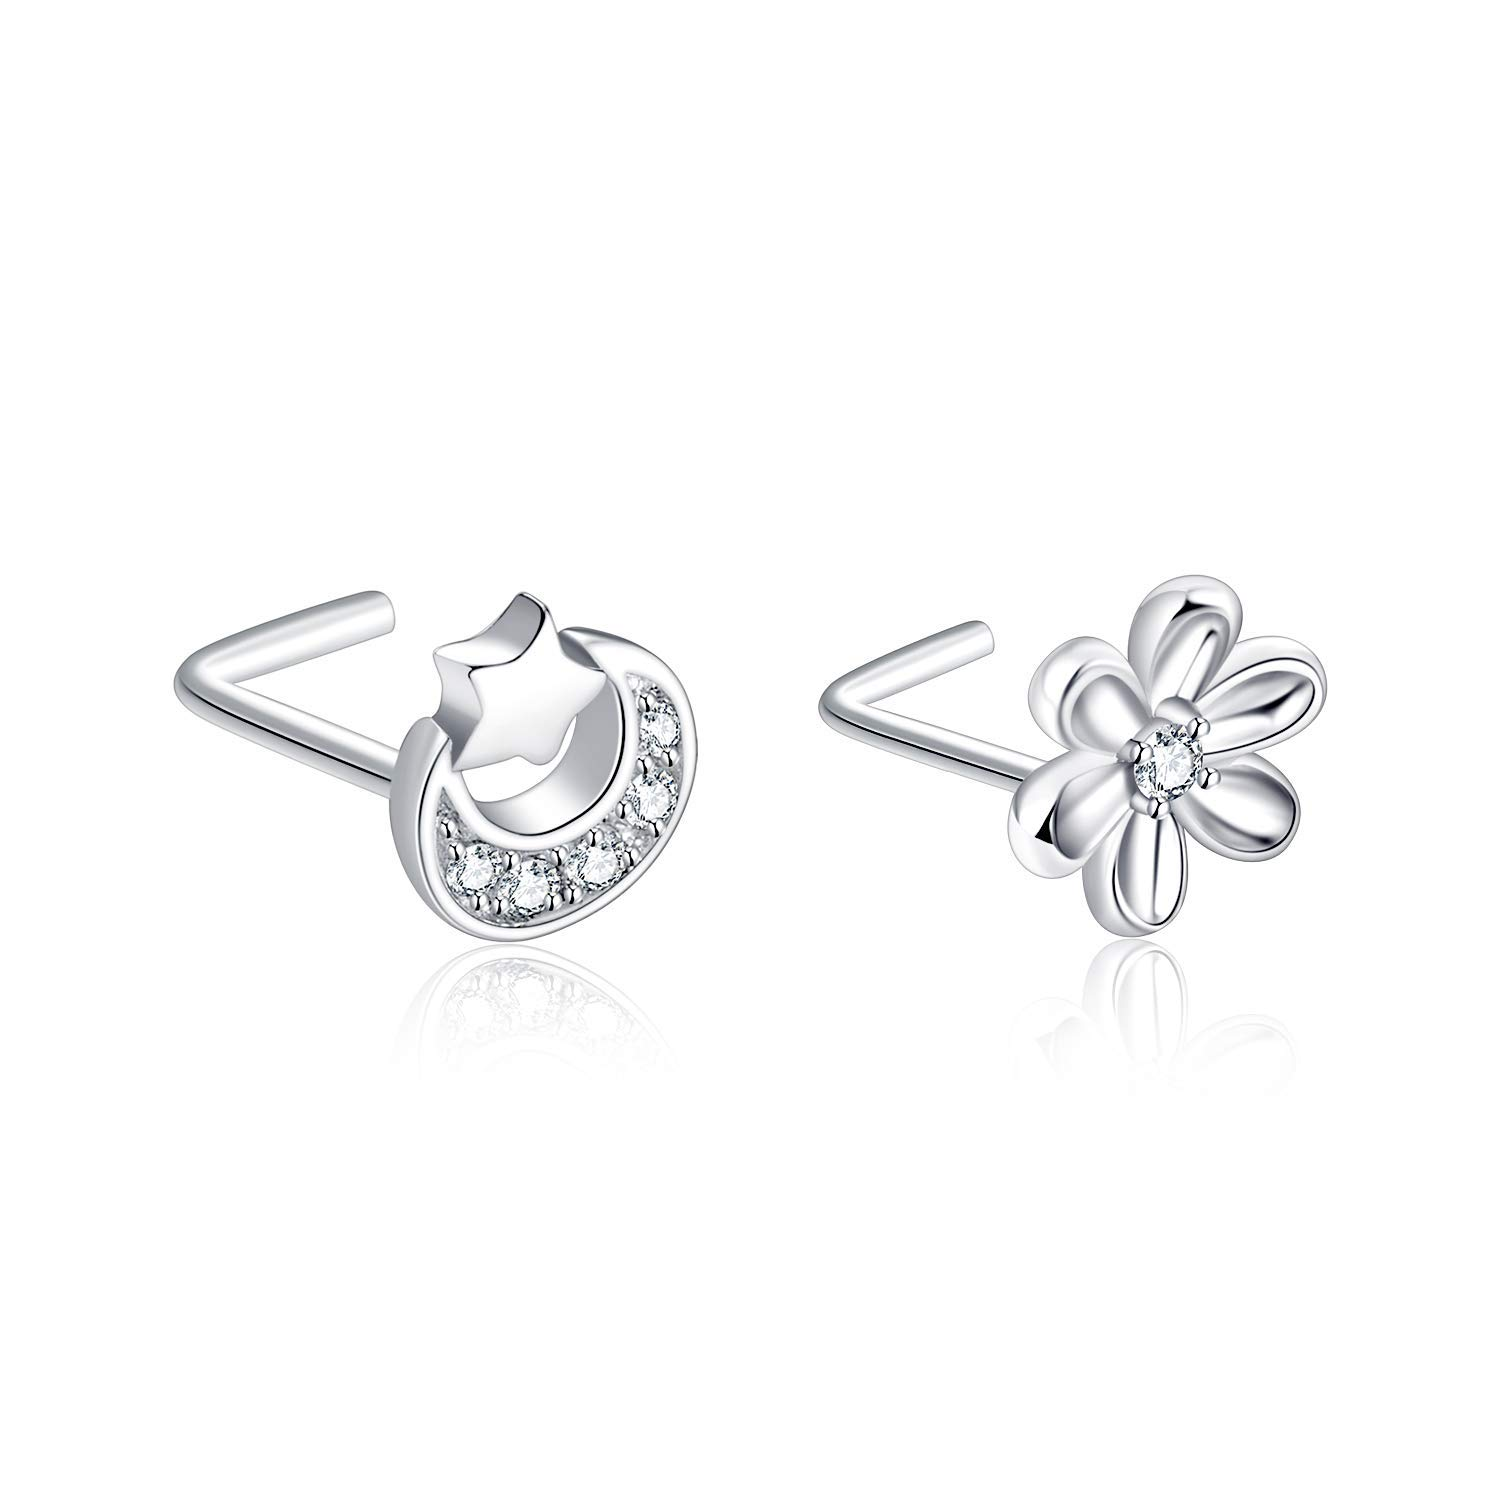 POPLYKE 2PCS Sterling Silver L Shape Daisy Flower Nose Rings and Star Moon Nose Rings for Women Girls